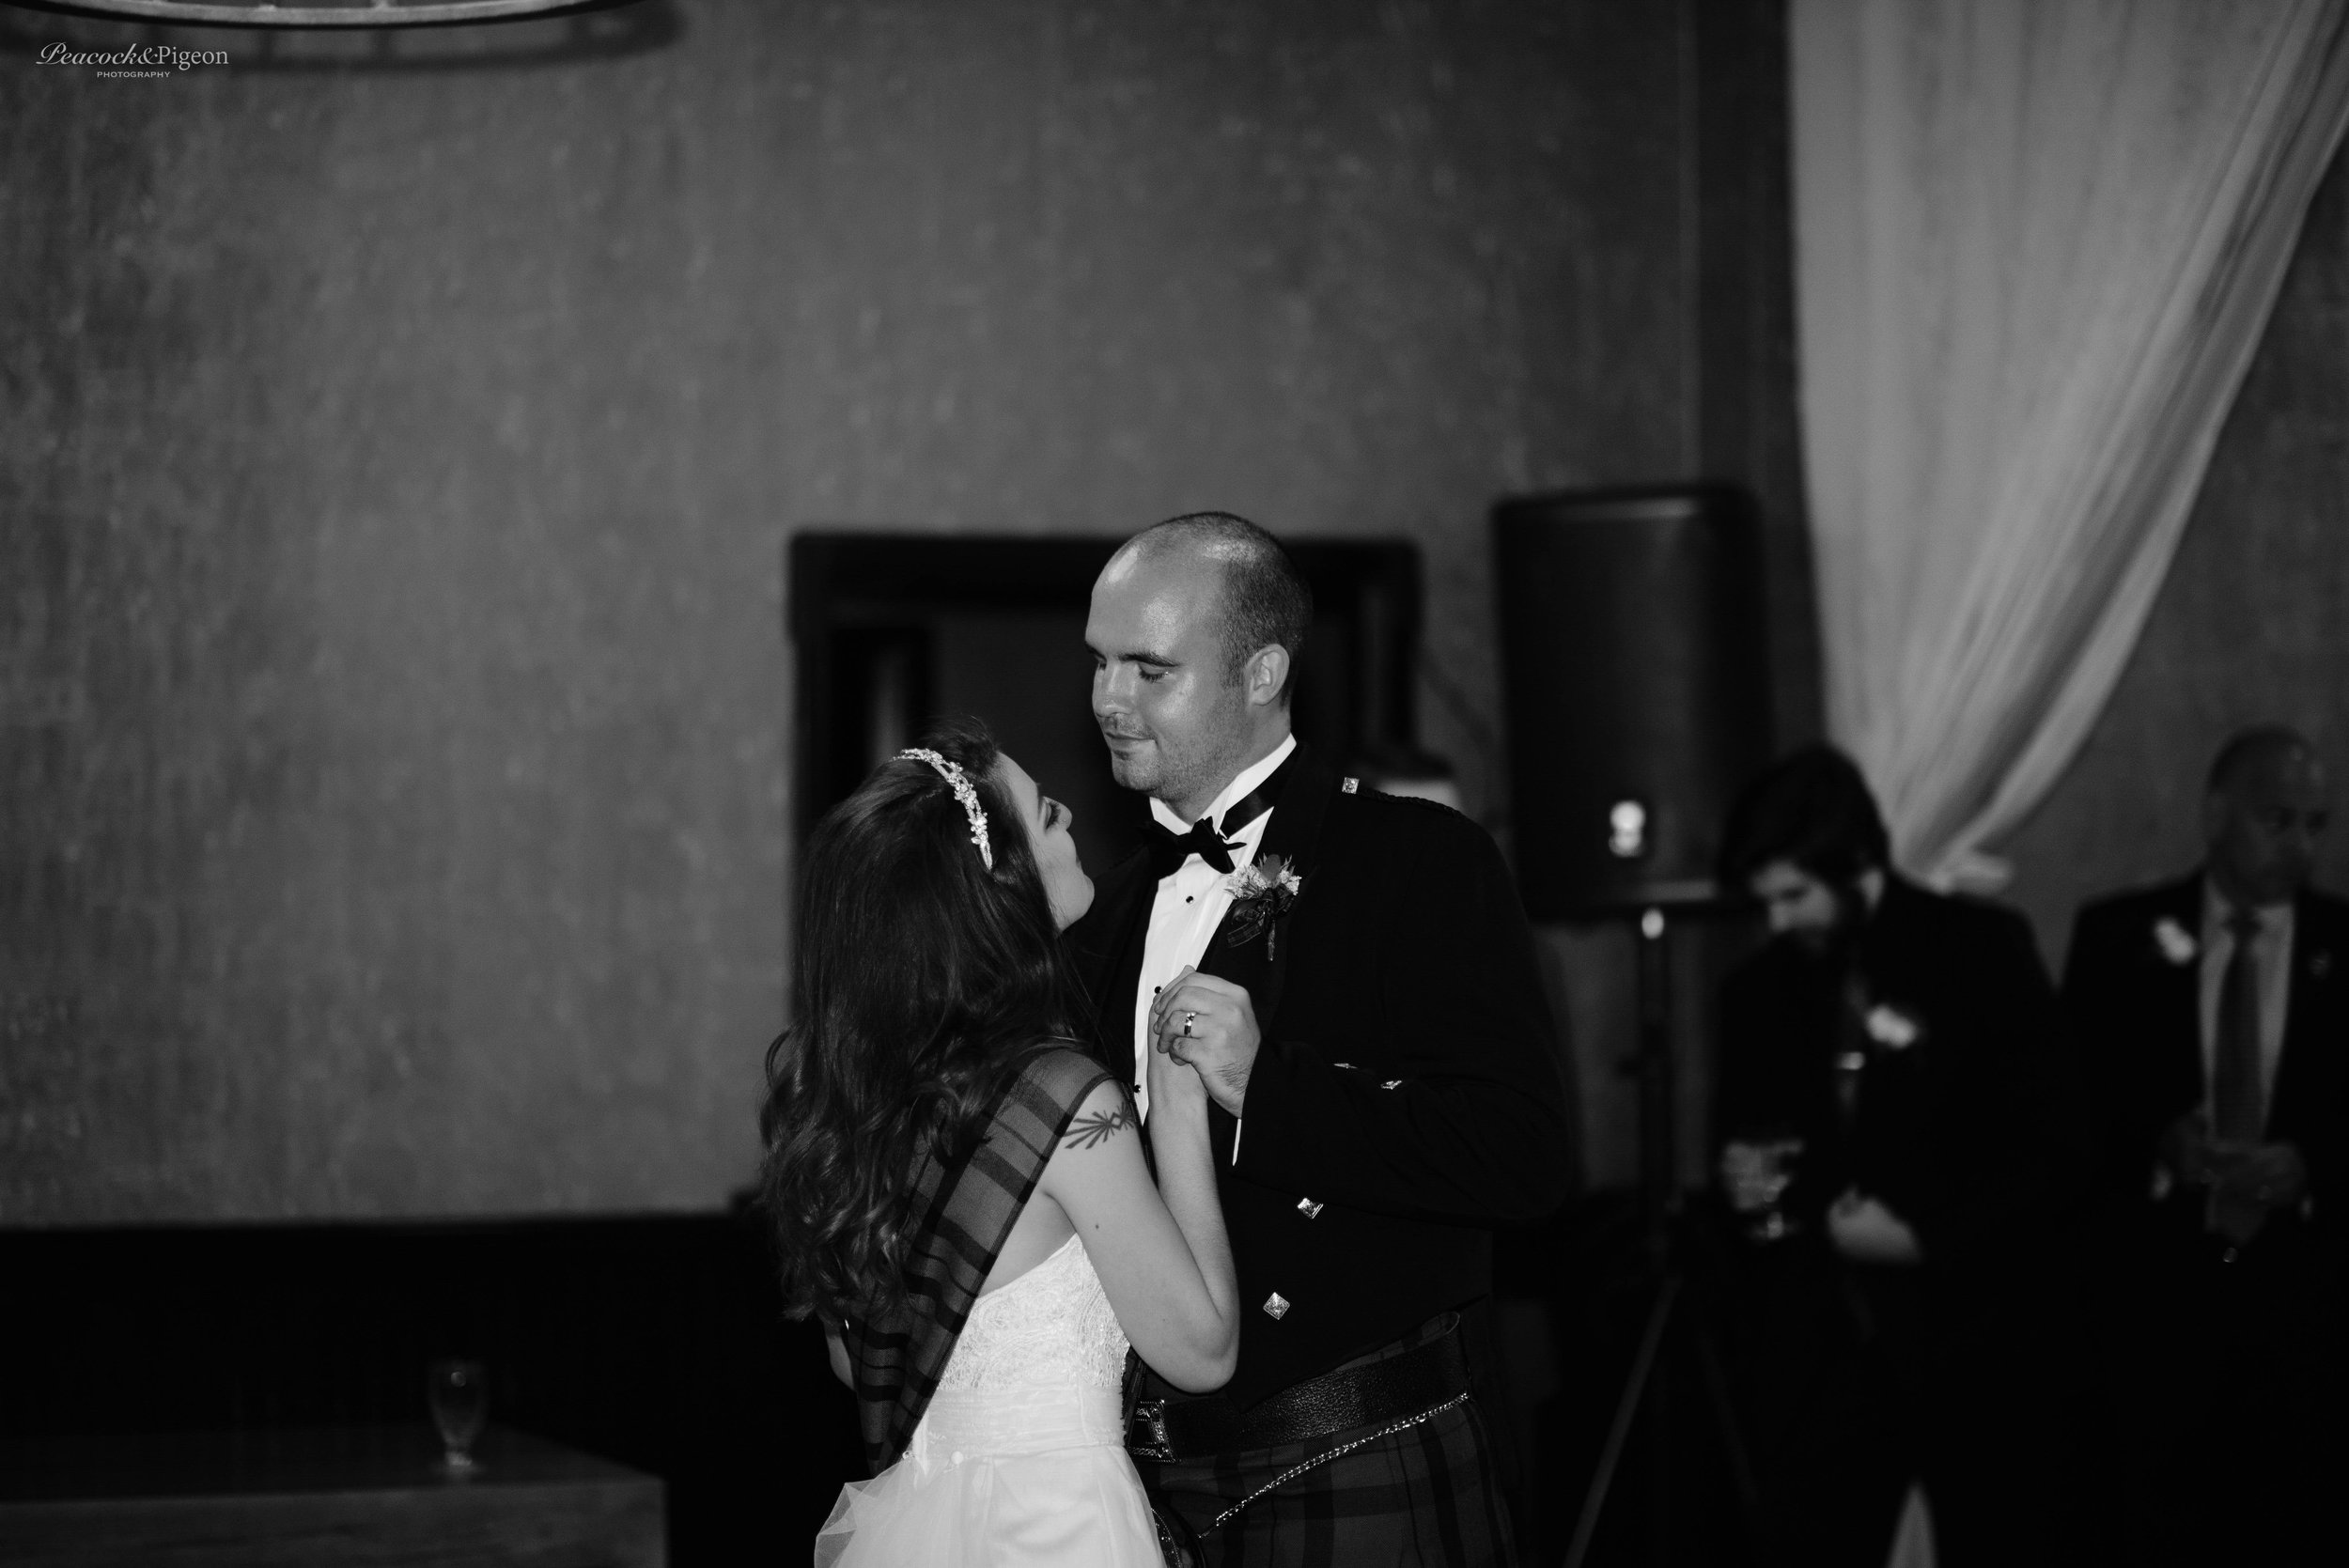 Callum_and_Sara's_Wedding_at_the_Cork_Factory_Hotel_in_Lancaster-Part_Seven_First_Dances_Black_and_White_Watermarked-14.jpg